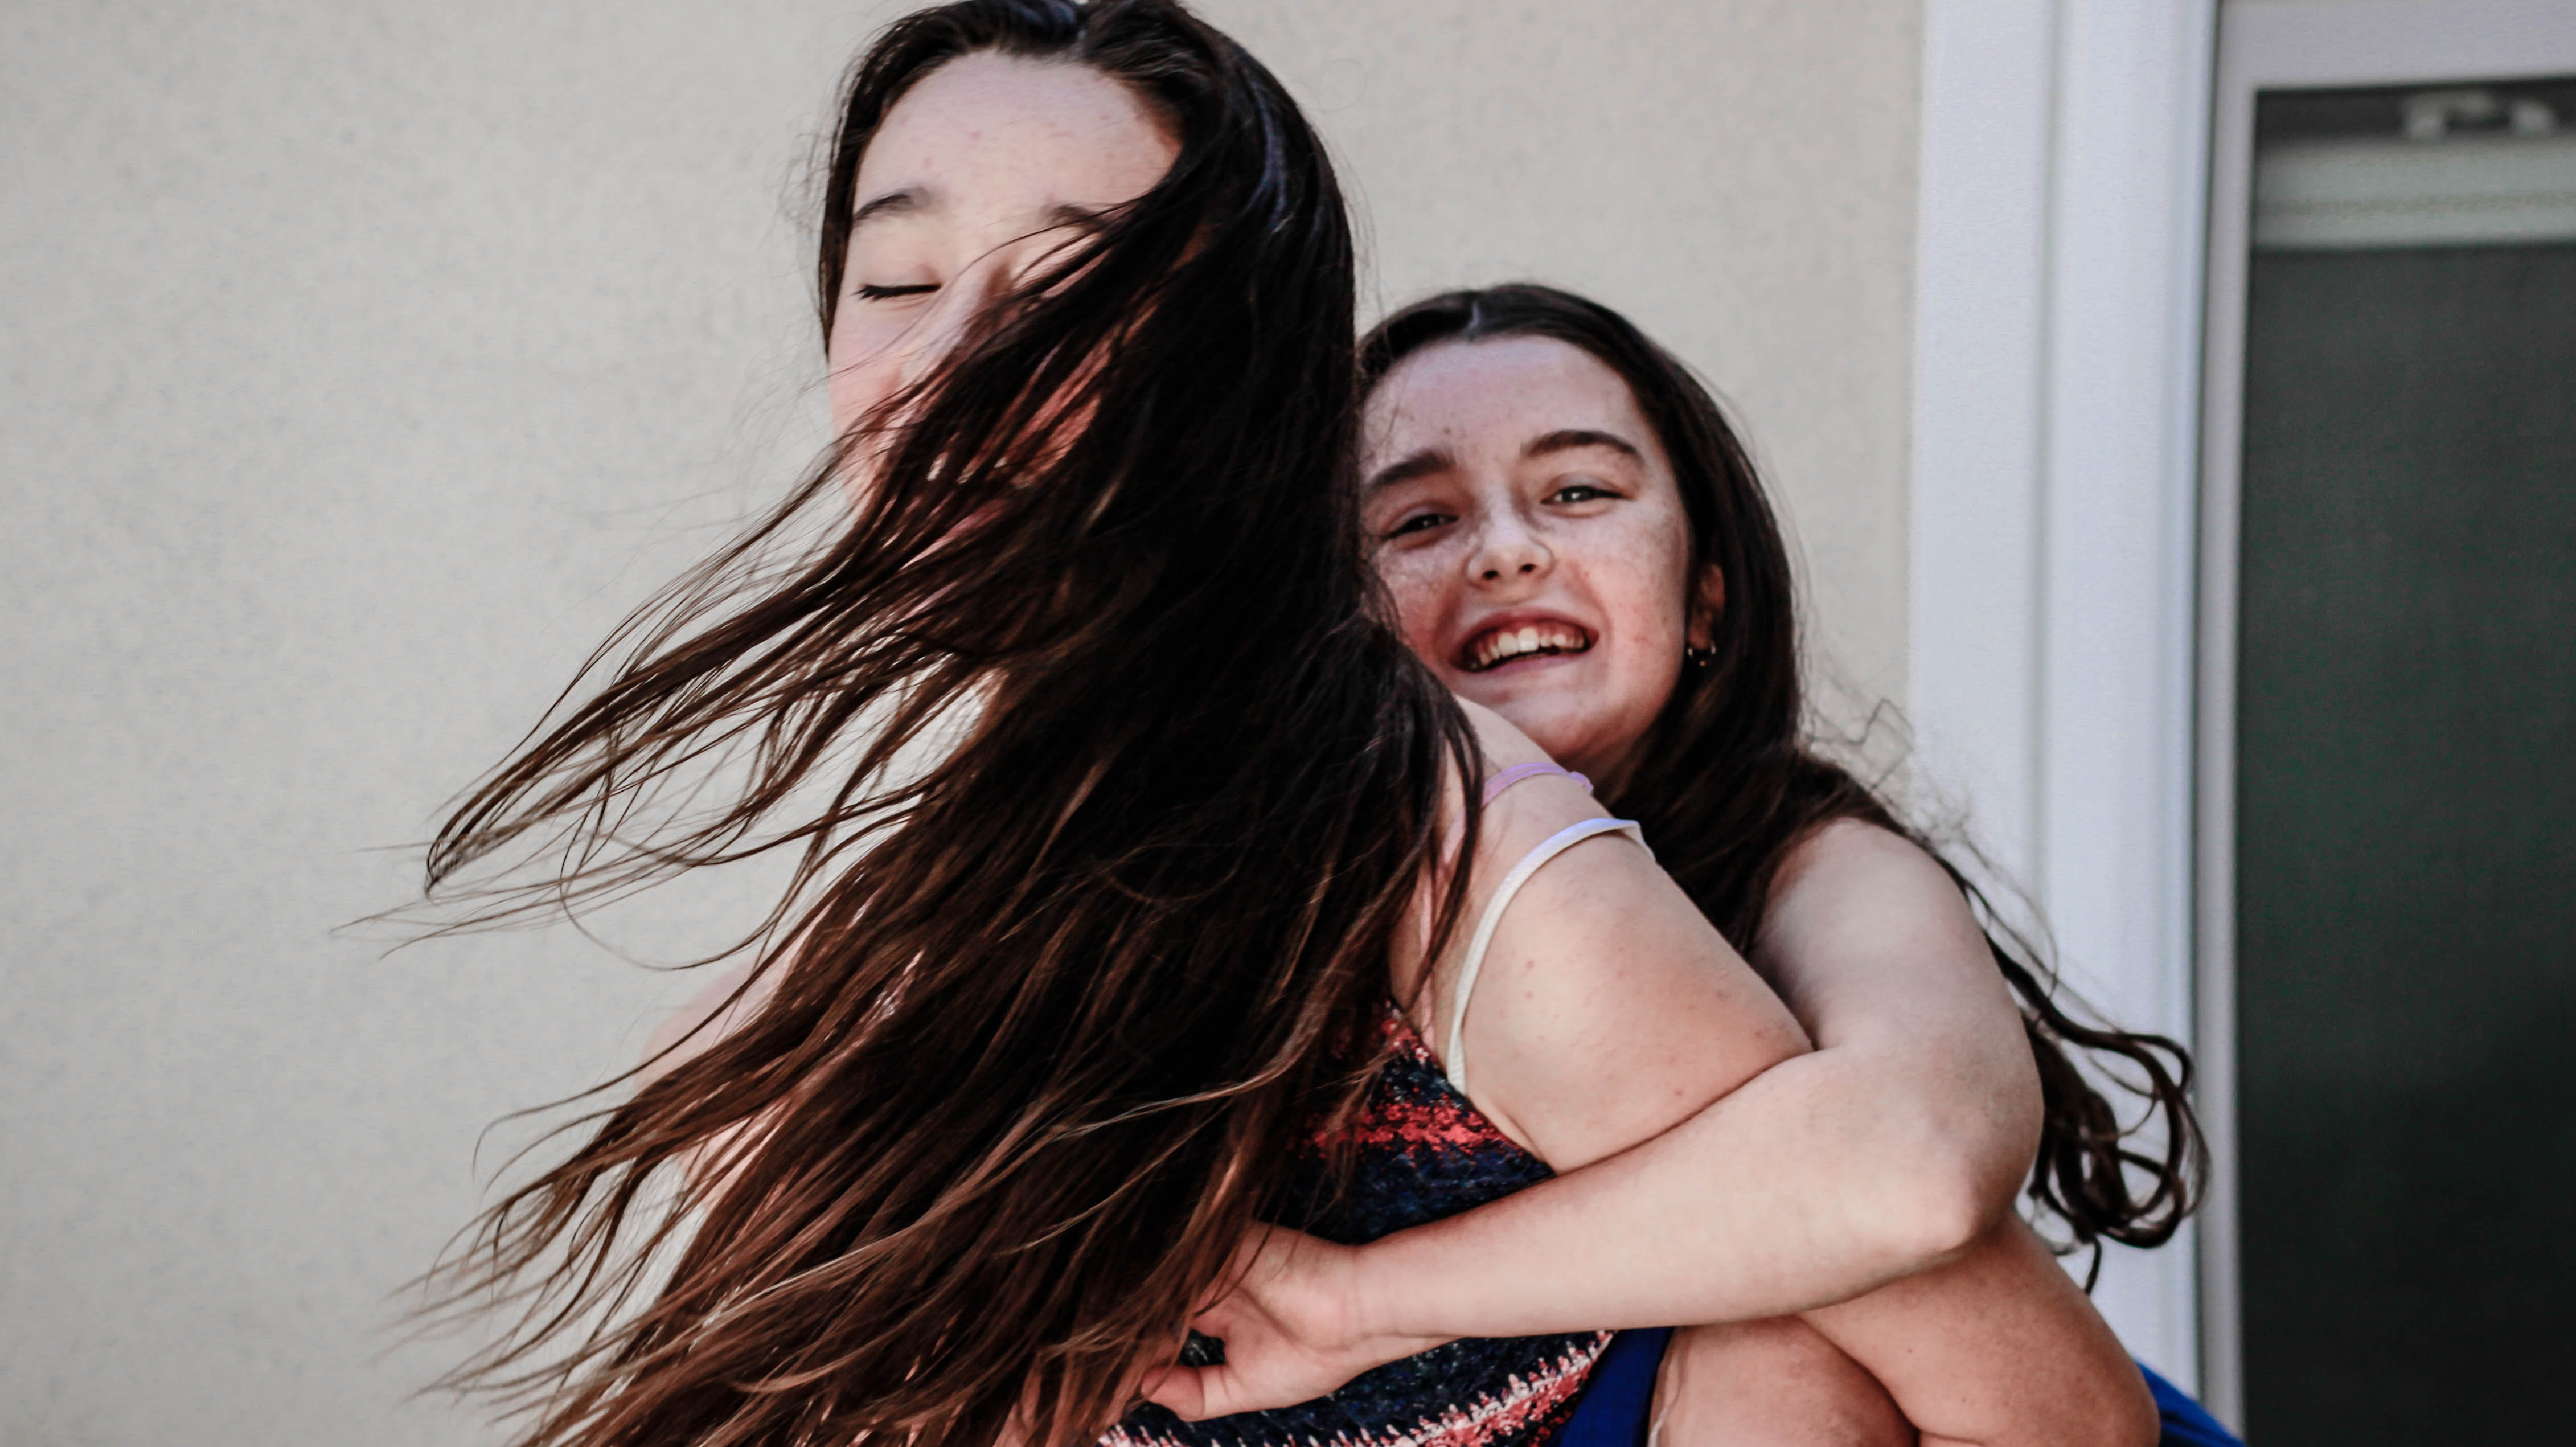 4 Ways to Encourage Healthy Body Image in Your Daughter